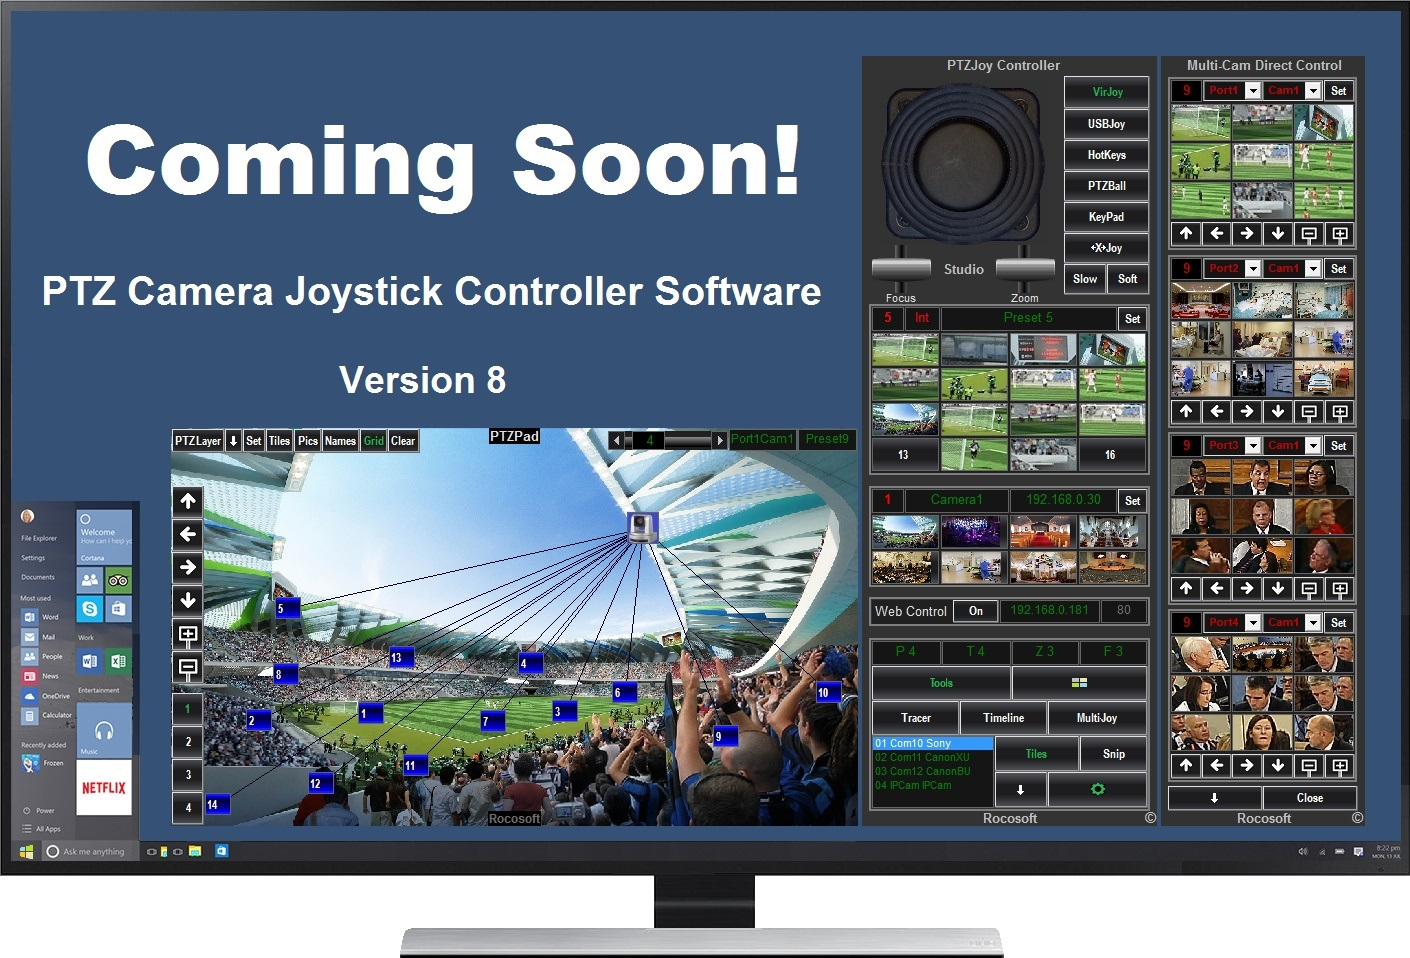 Rocosoft PTZ Camera Controller Software Version 8 Release is Coming Soon